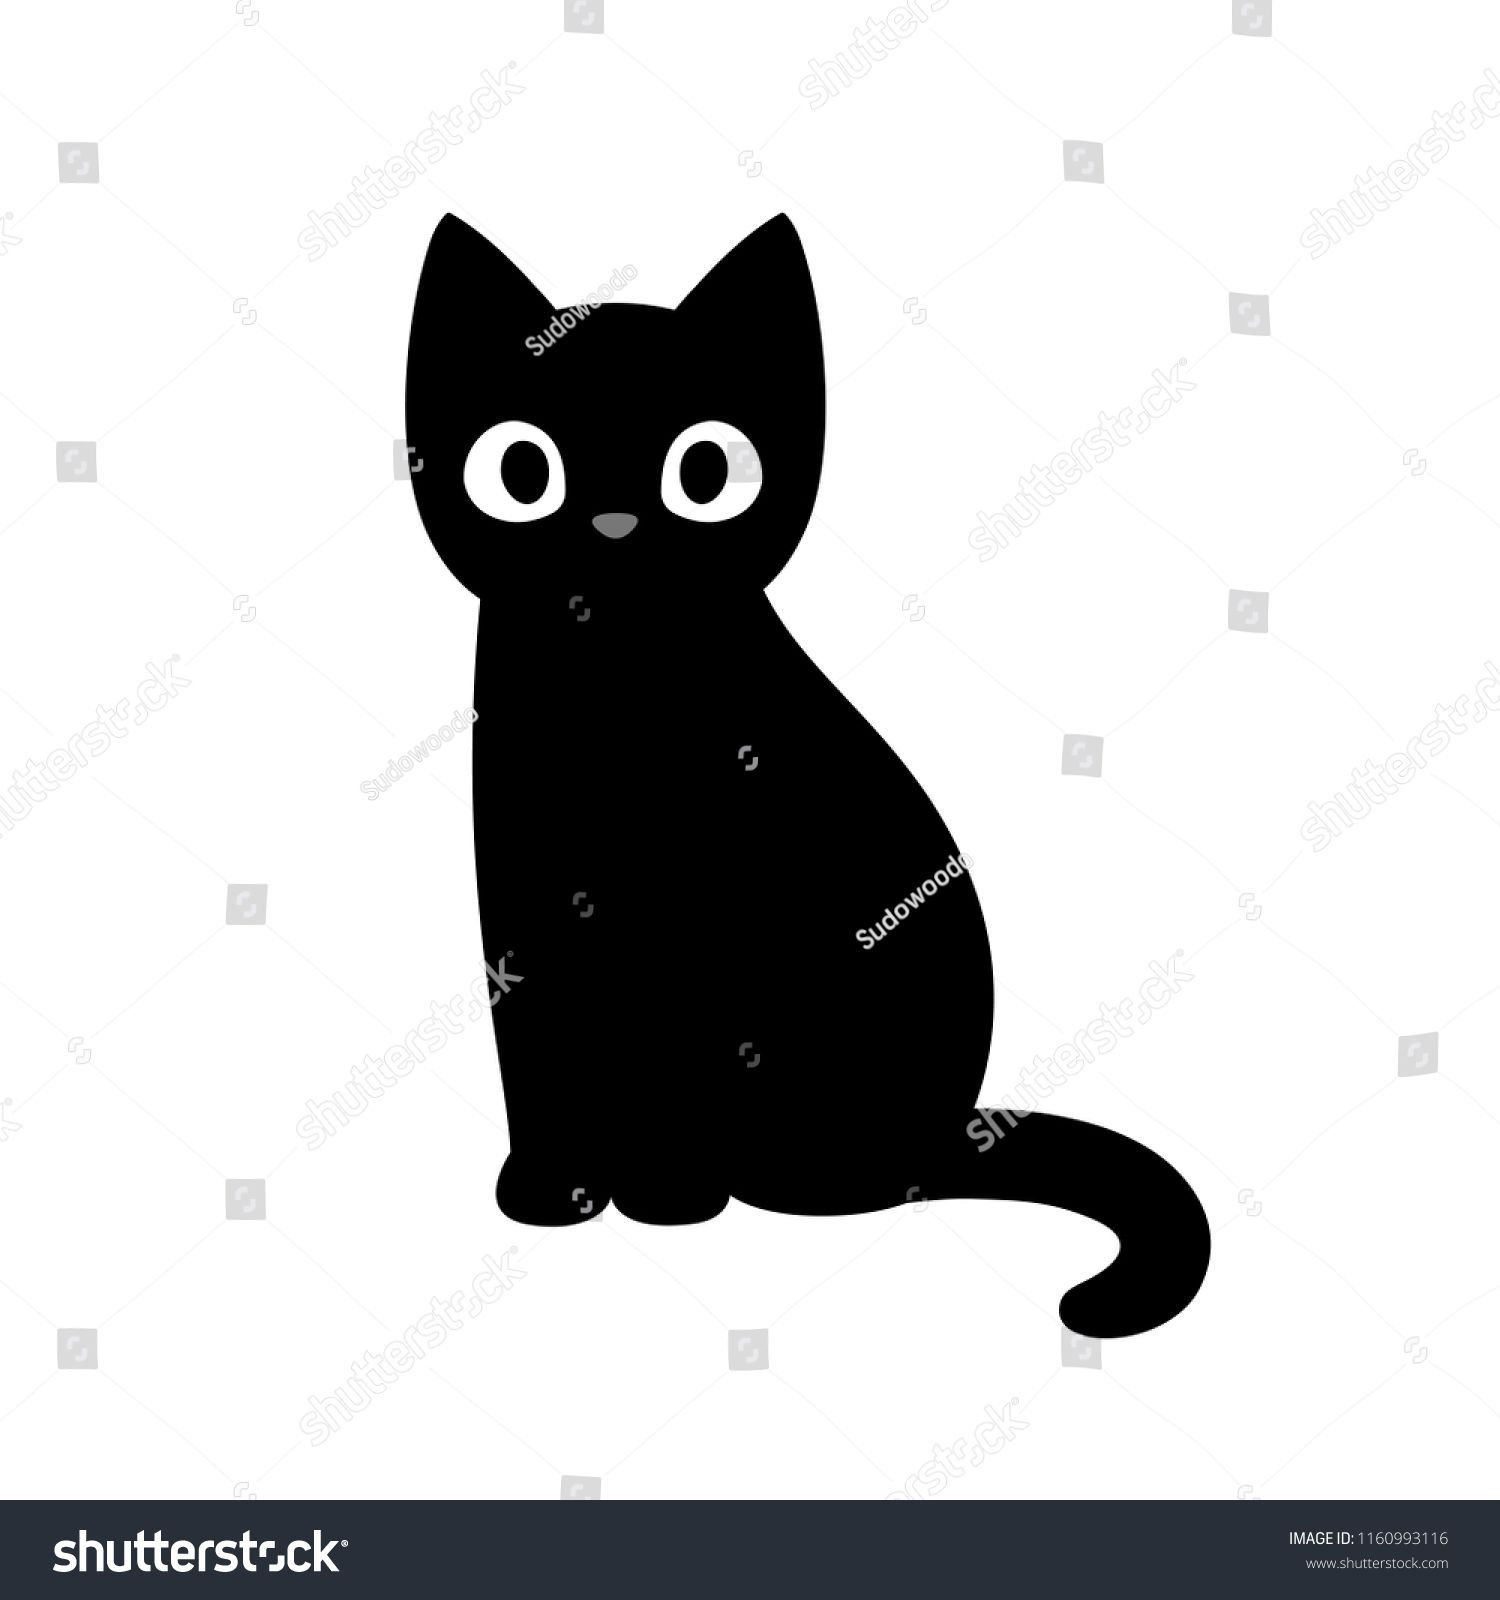 Cute Black Cat Drawings For Halloween In 2020 With Images